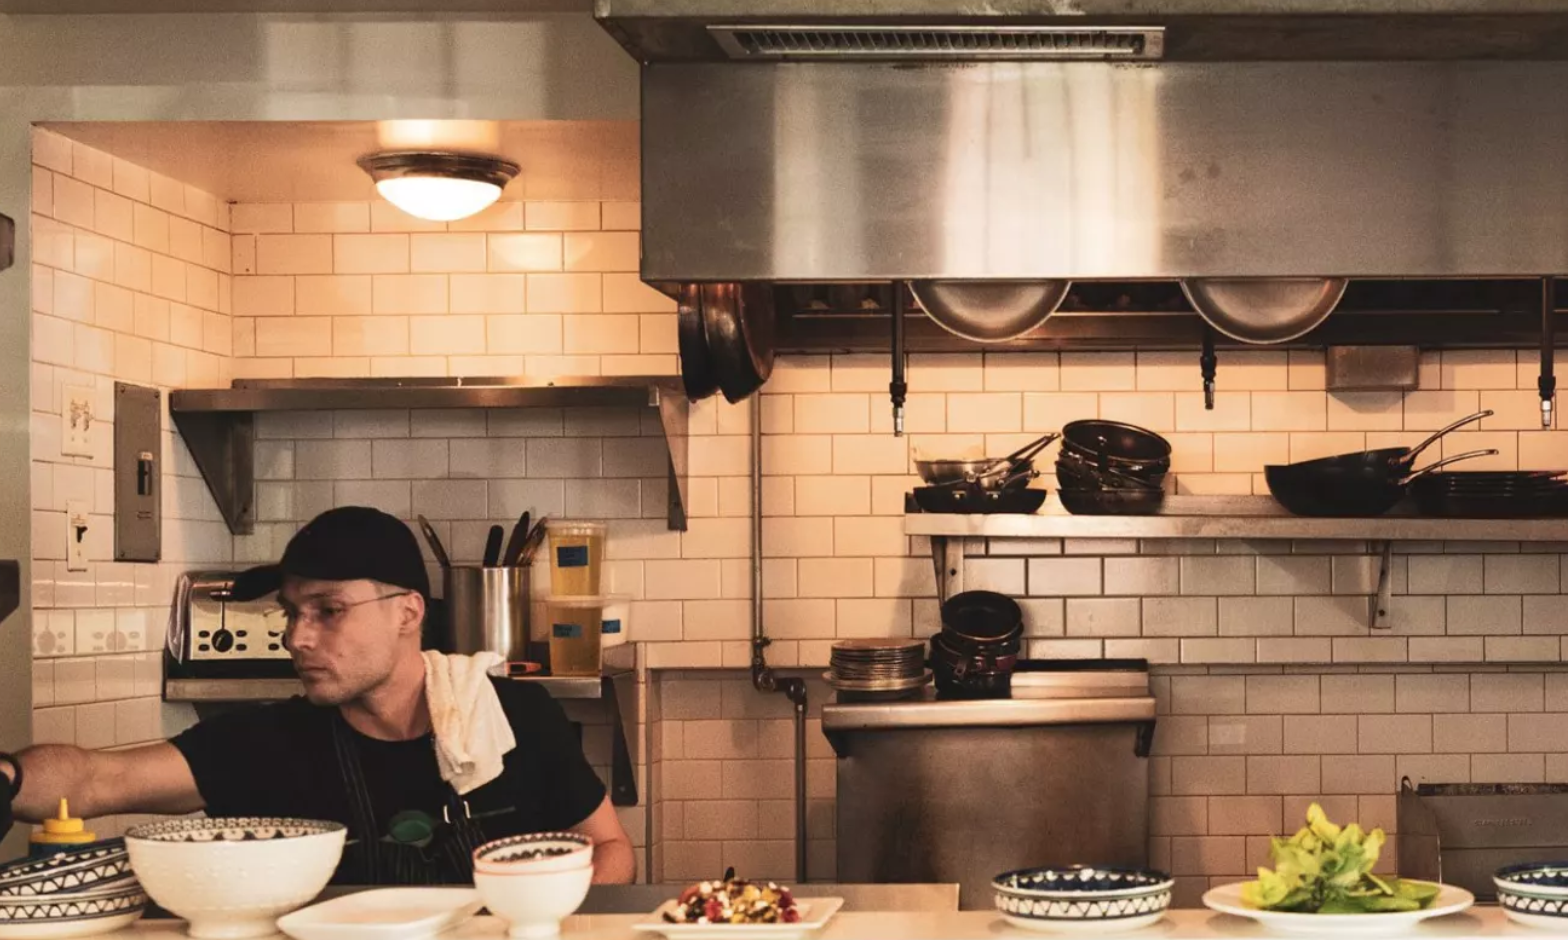 N.Y.C. Eatery Caters to Huddled Masses Yearning to ... Cook!